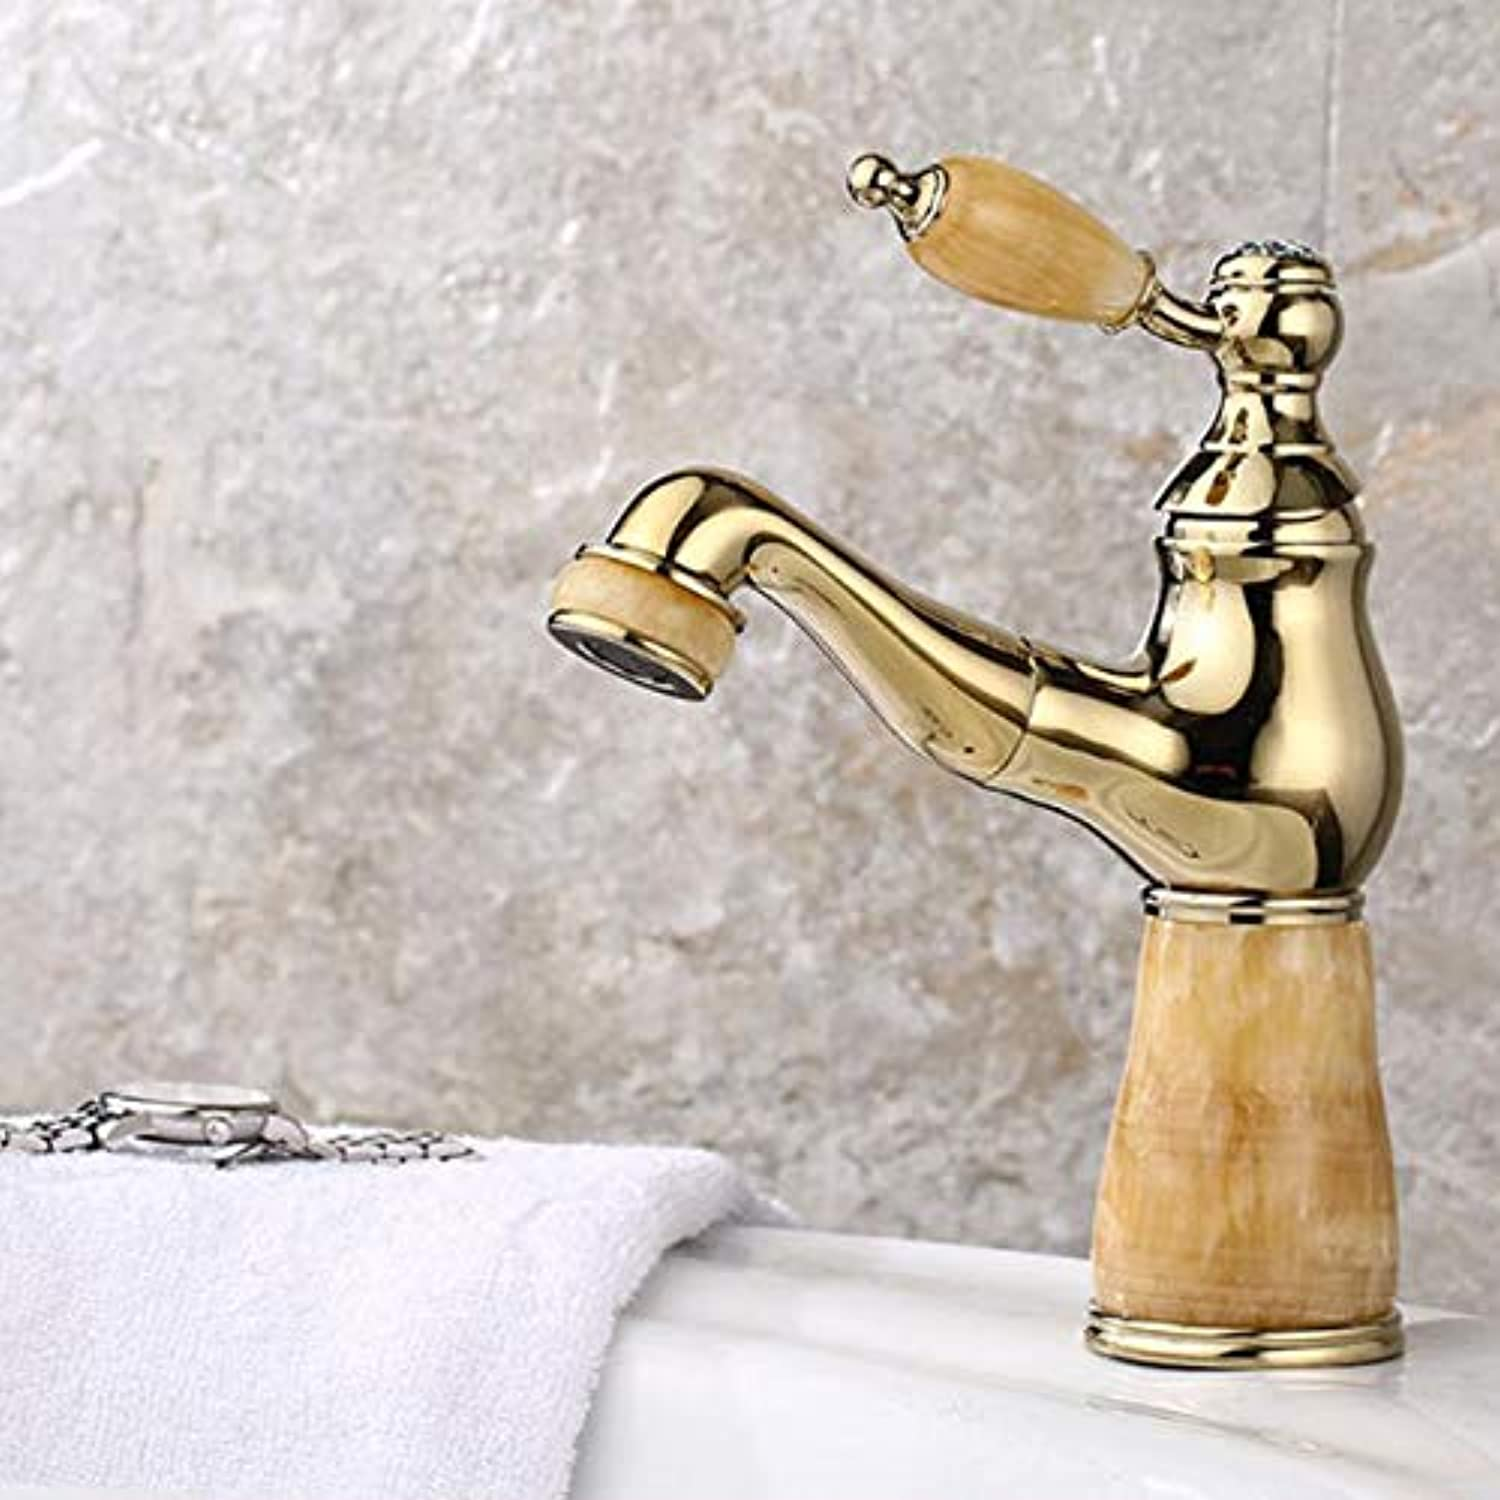 Bathroom Sink Faucet, Copper Pullable Faucet, Jade Bathroom Basin Single Hole Basin Hot And Cold Water Faucet